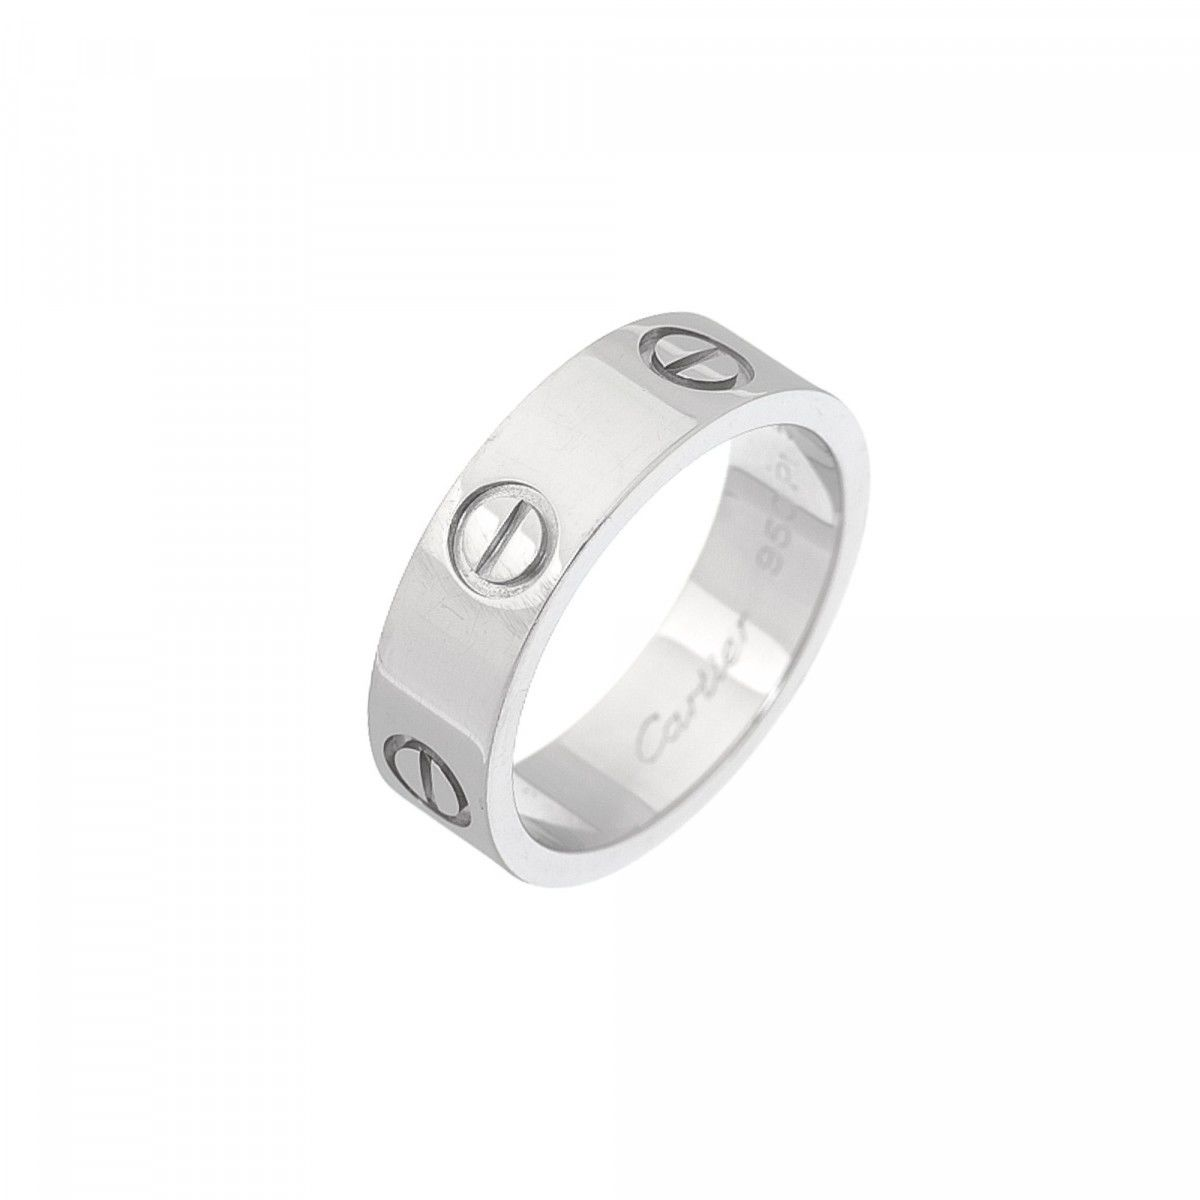 detail ring couple buy c j engagement love for rings tanishq product